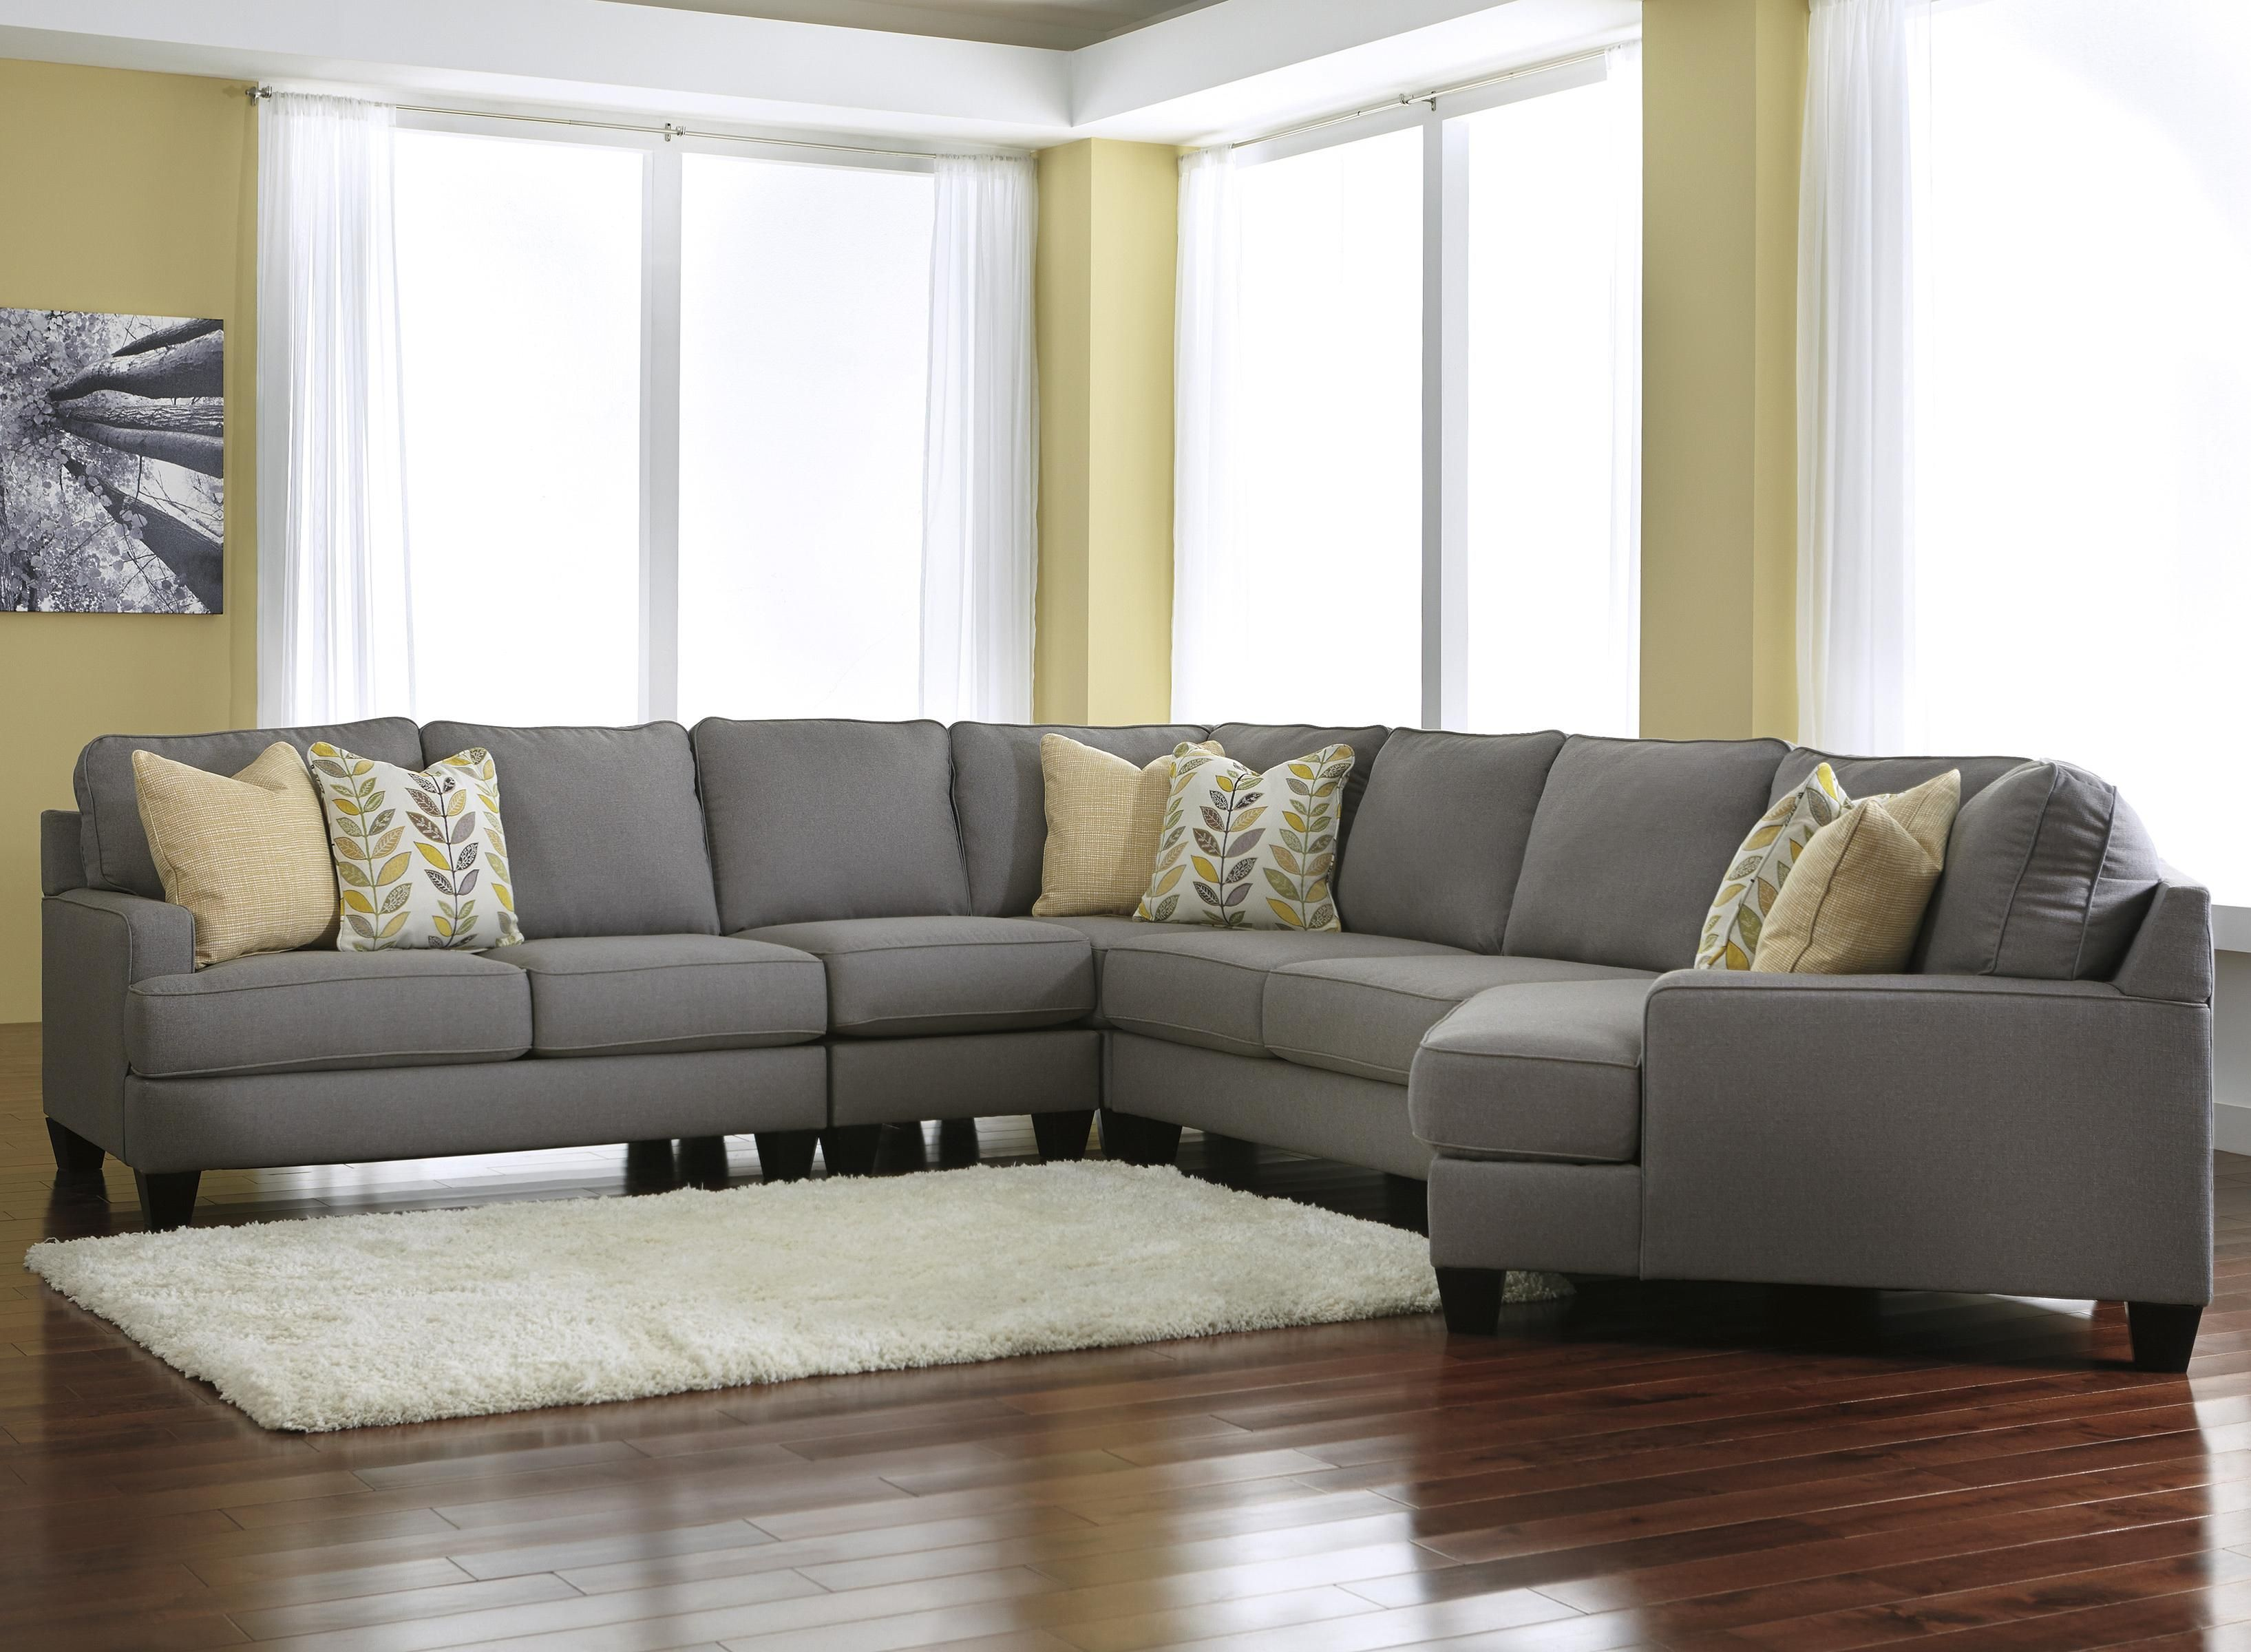 Living Room Designs With Sectionals Adorable Chamberly  Alloy Modern 5Piece Sectional Sofa With Right Cuddler Design Inspiration